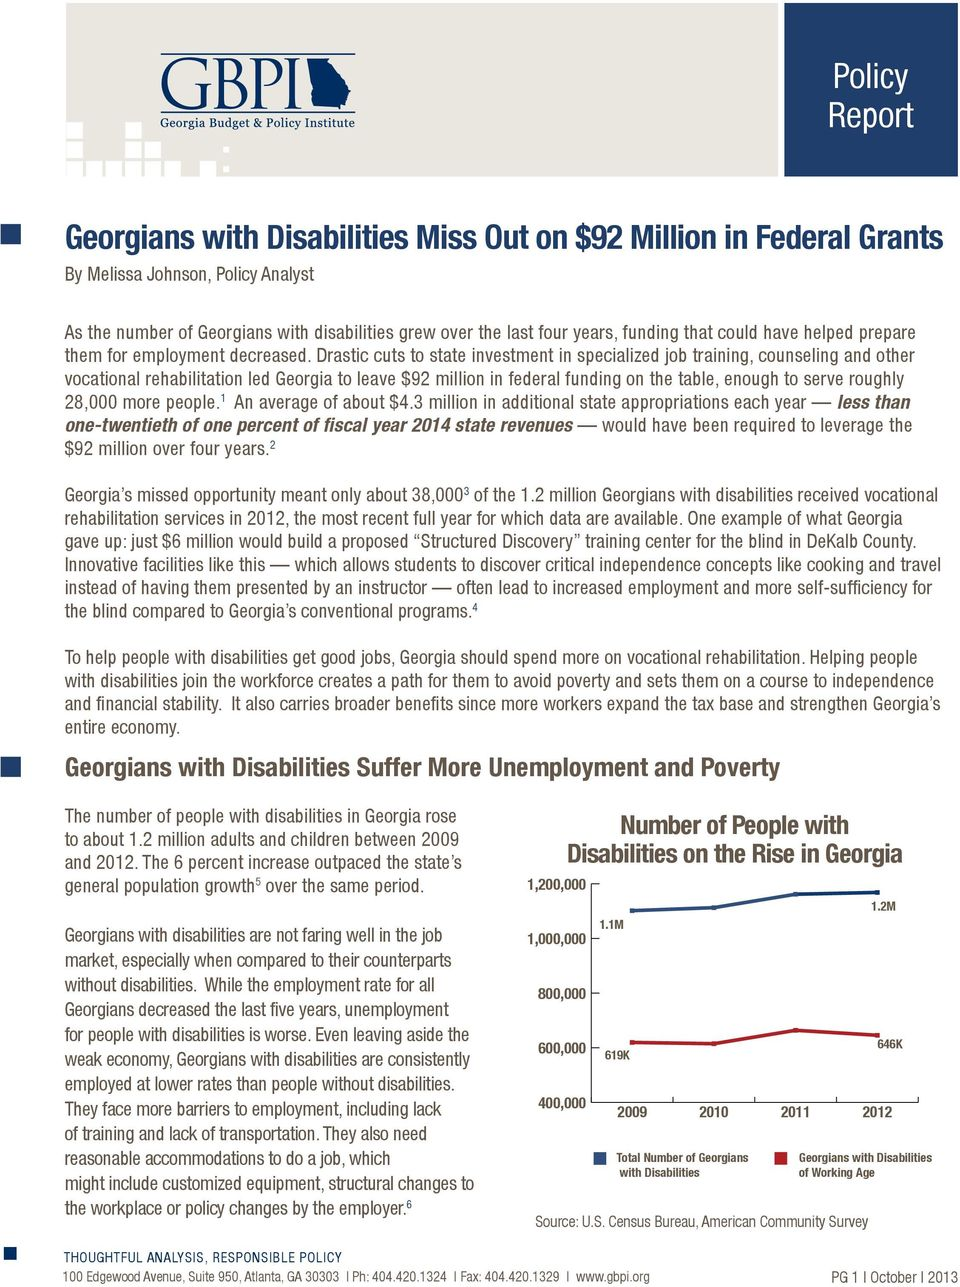 Drastic cuts to state investment in specialized job training, counseling and other vocational rehabilitation led Georgia to leave $92 million in federal funding on the table, enough to serve roughly